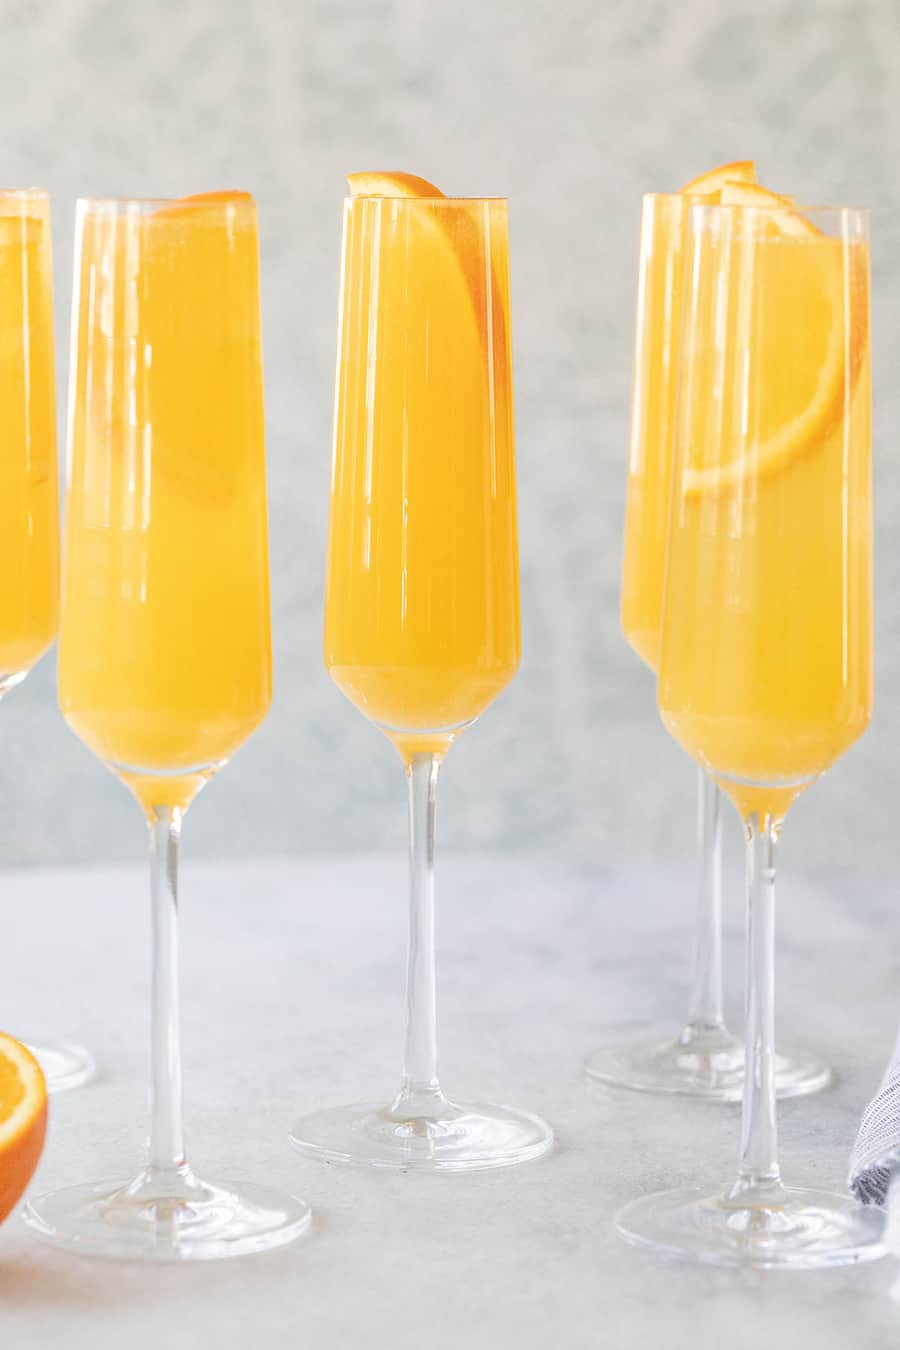 Mimosa recipe in a Champagne flute